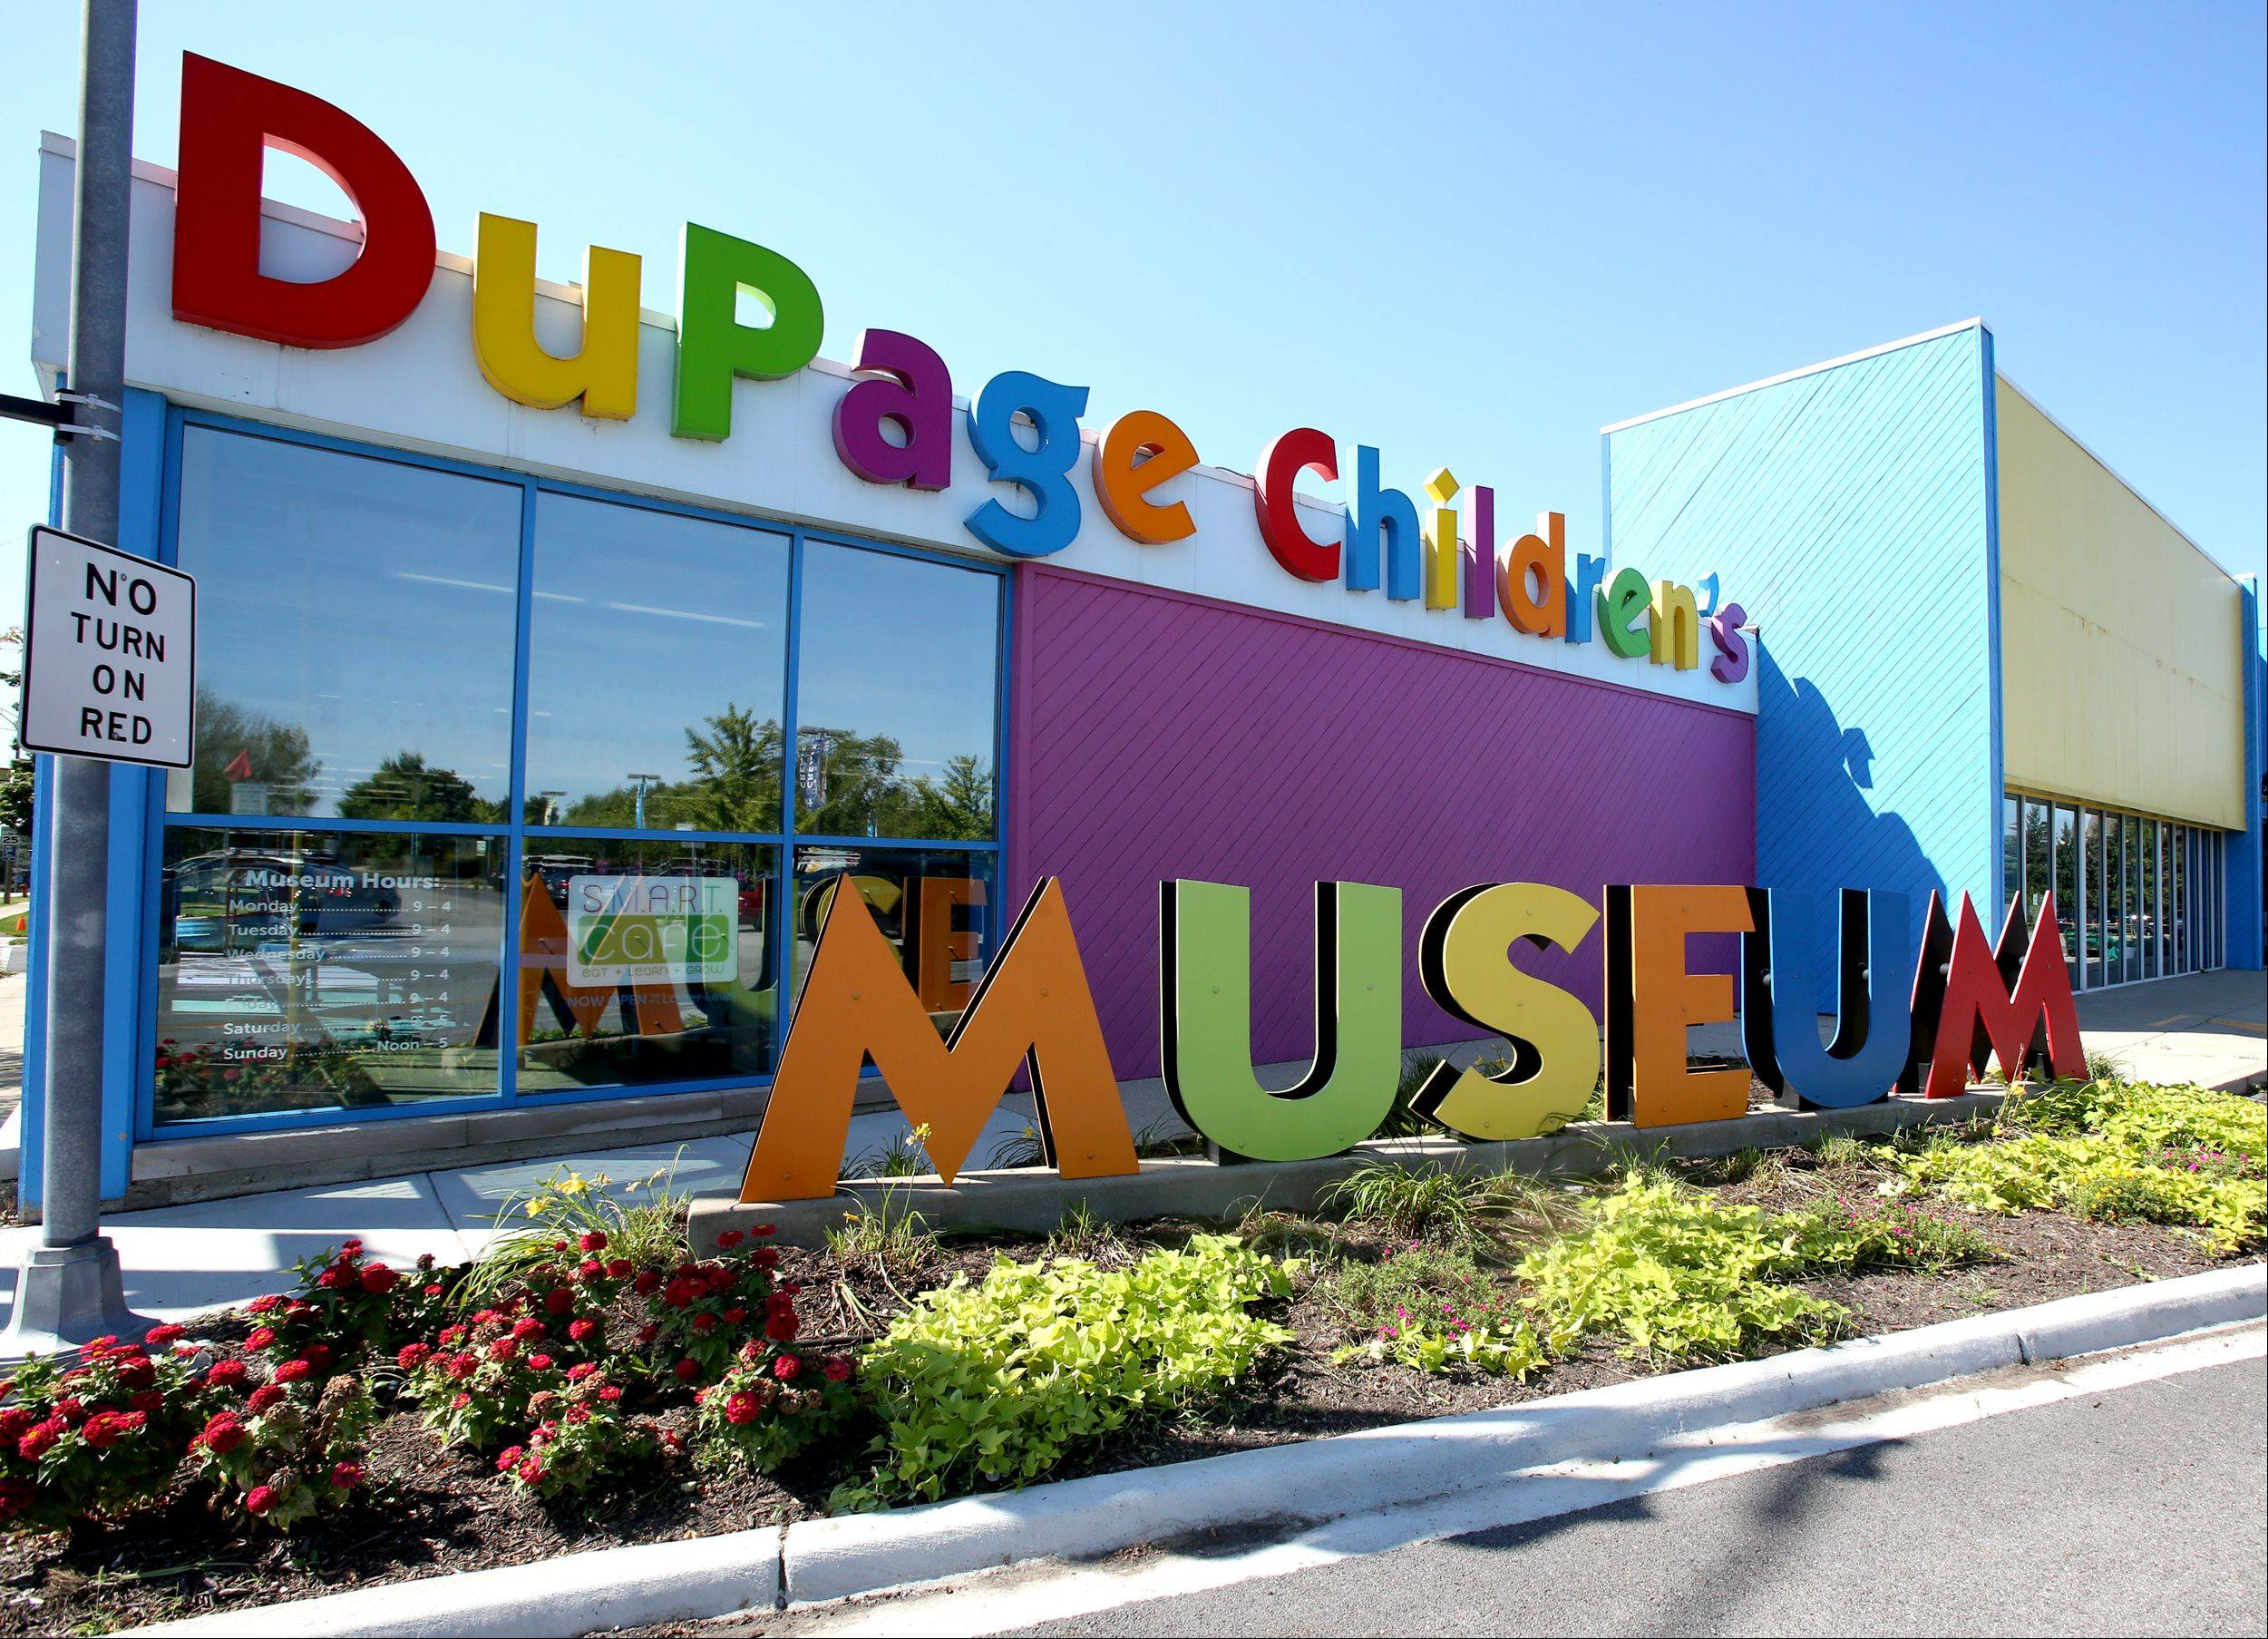 The DuPage Children�s Museum has committed to clean up landscaping that had gone to weeds this summer. Cleanup began Tuesday while the museum is closed until Wednesday, Sept. 11 for its annual maintenance period.